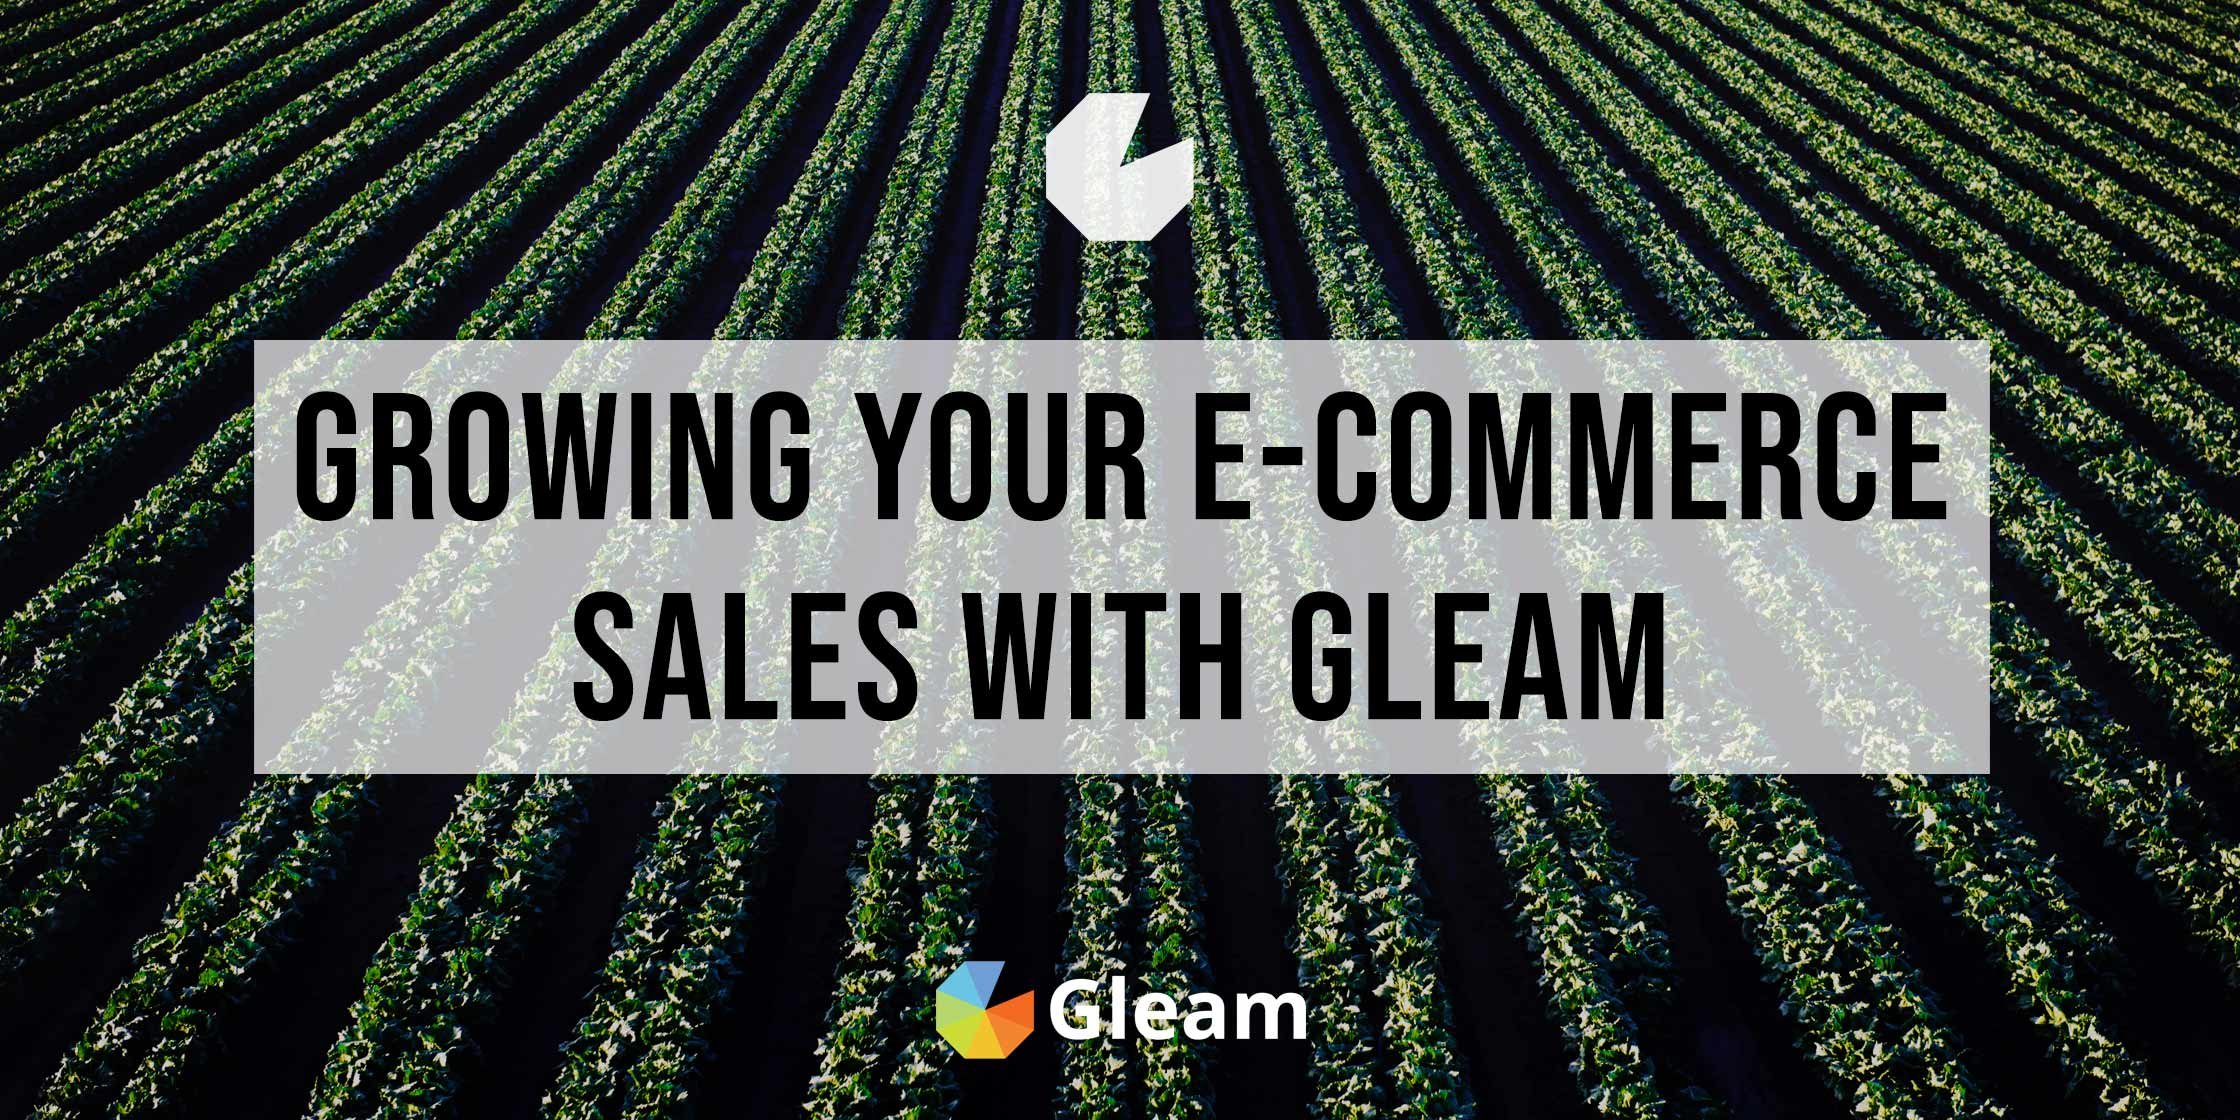 10 Ways To Grow Your E-Commerce Sales Using Gleam